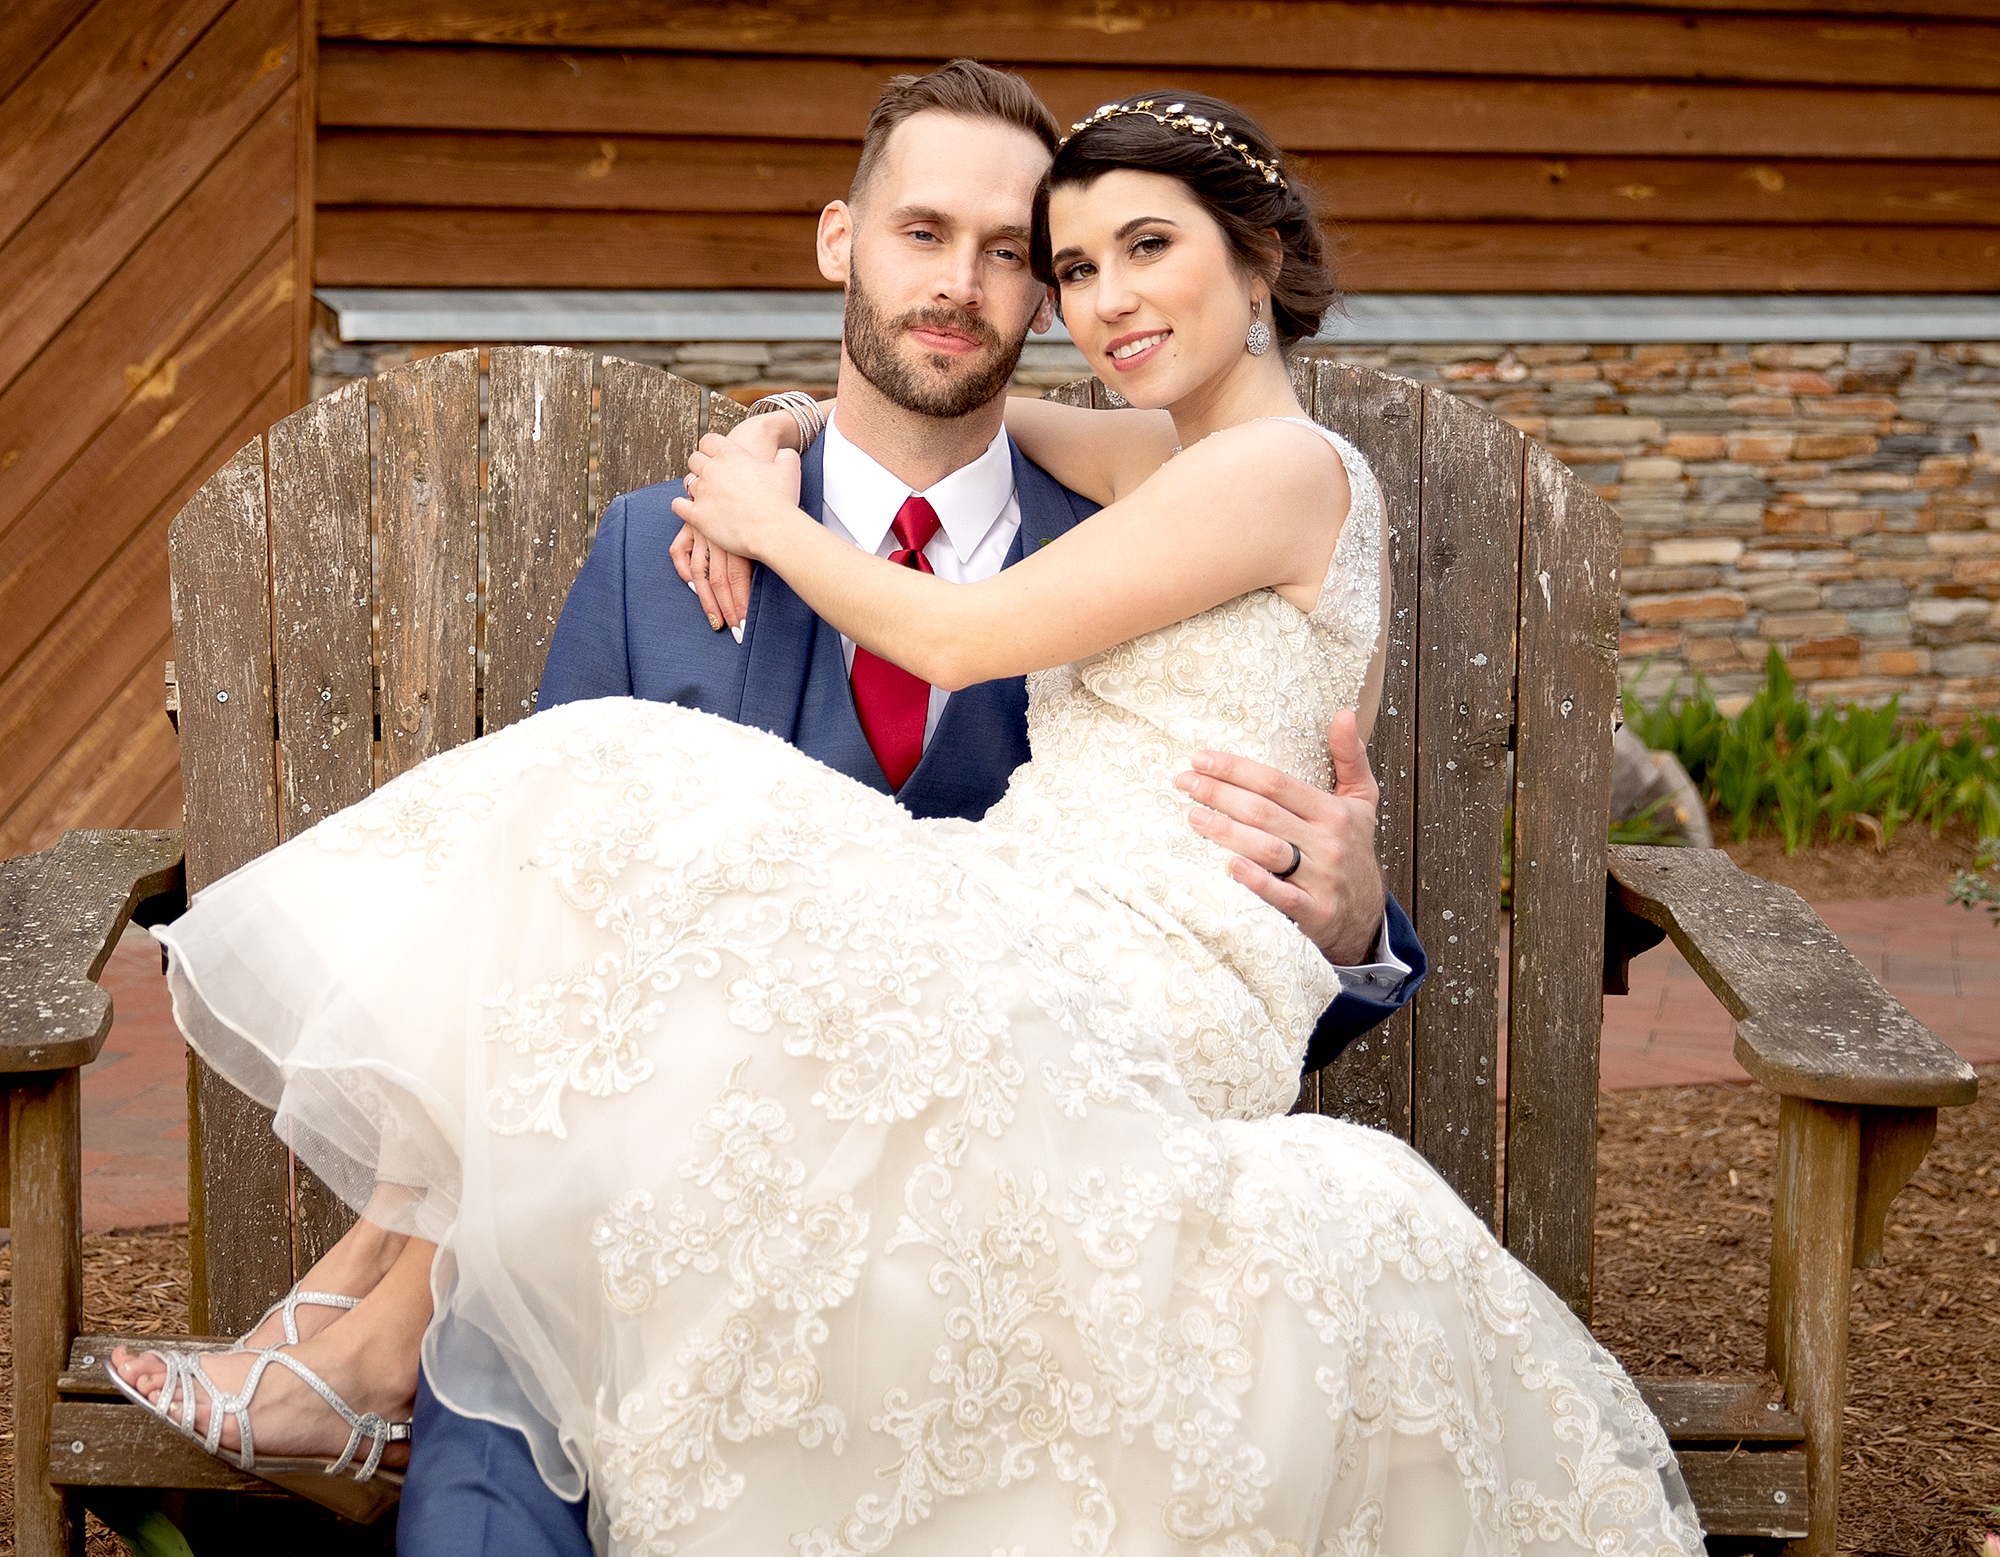 Matthew Gwynne and Amber Bowles on Married At First Sight